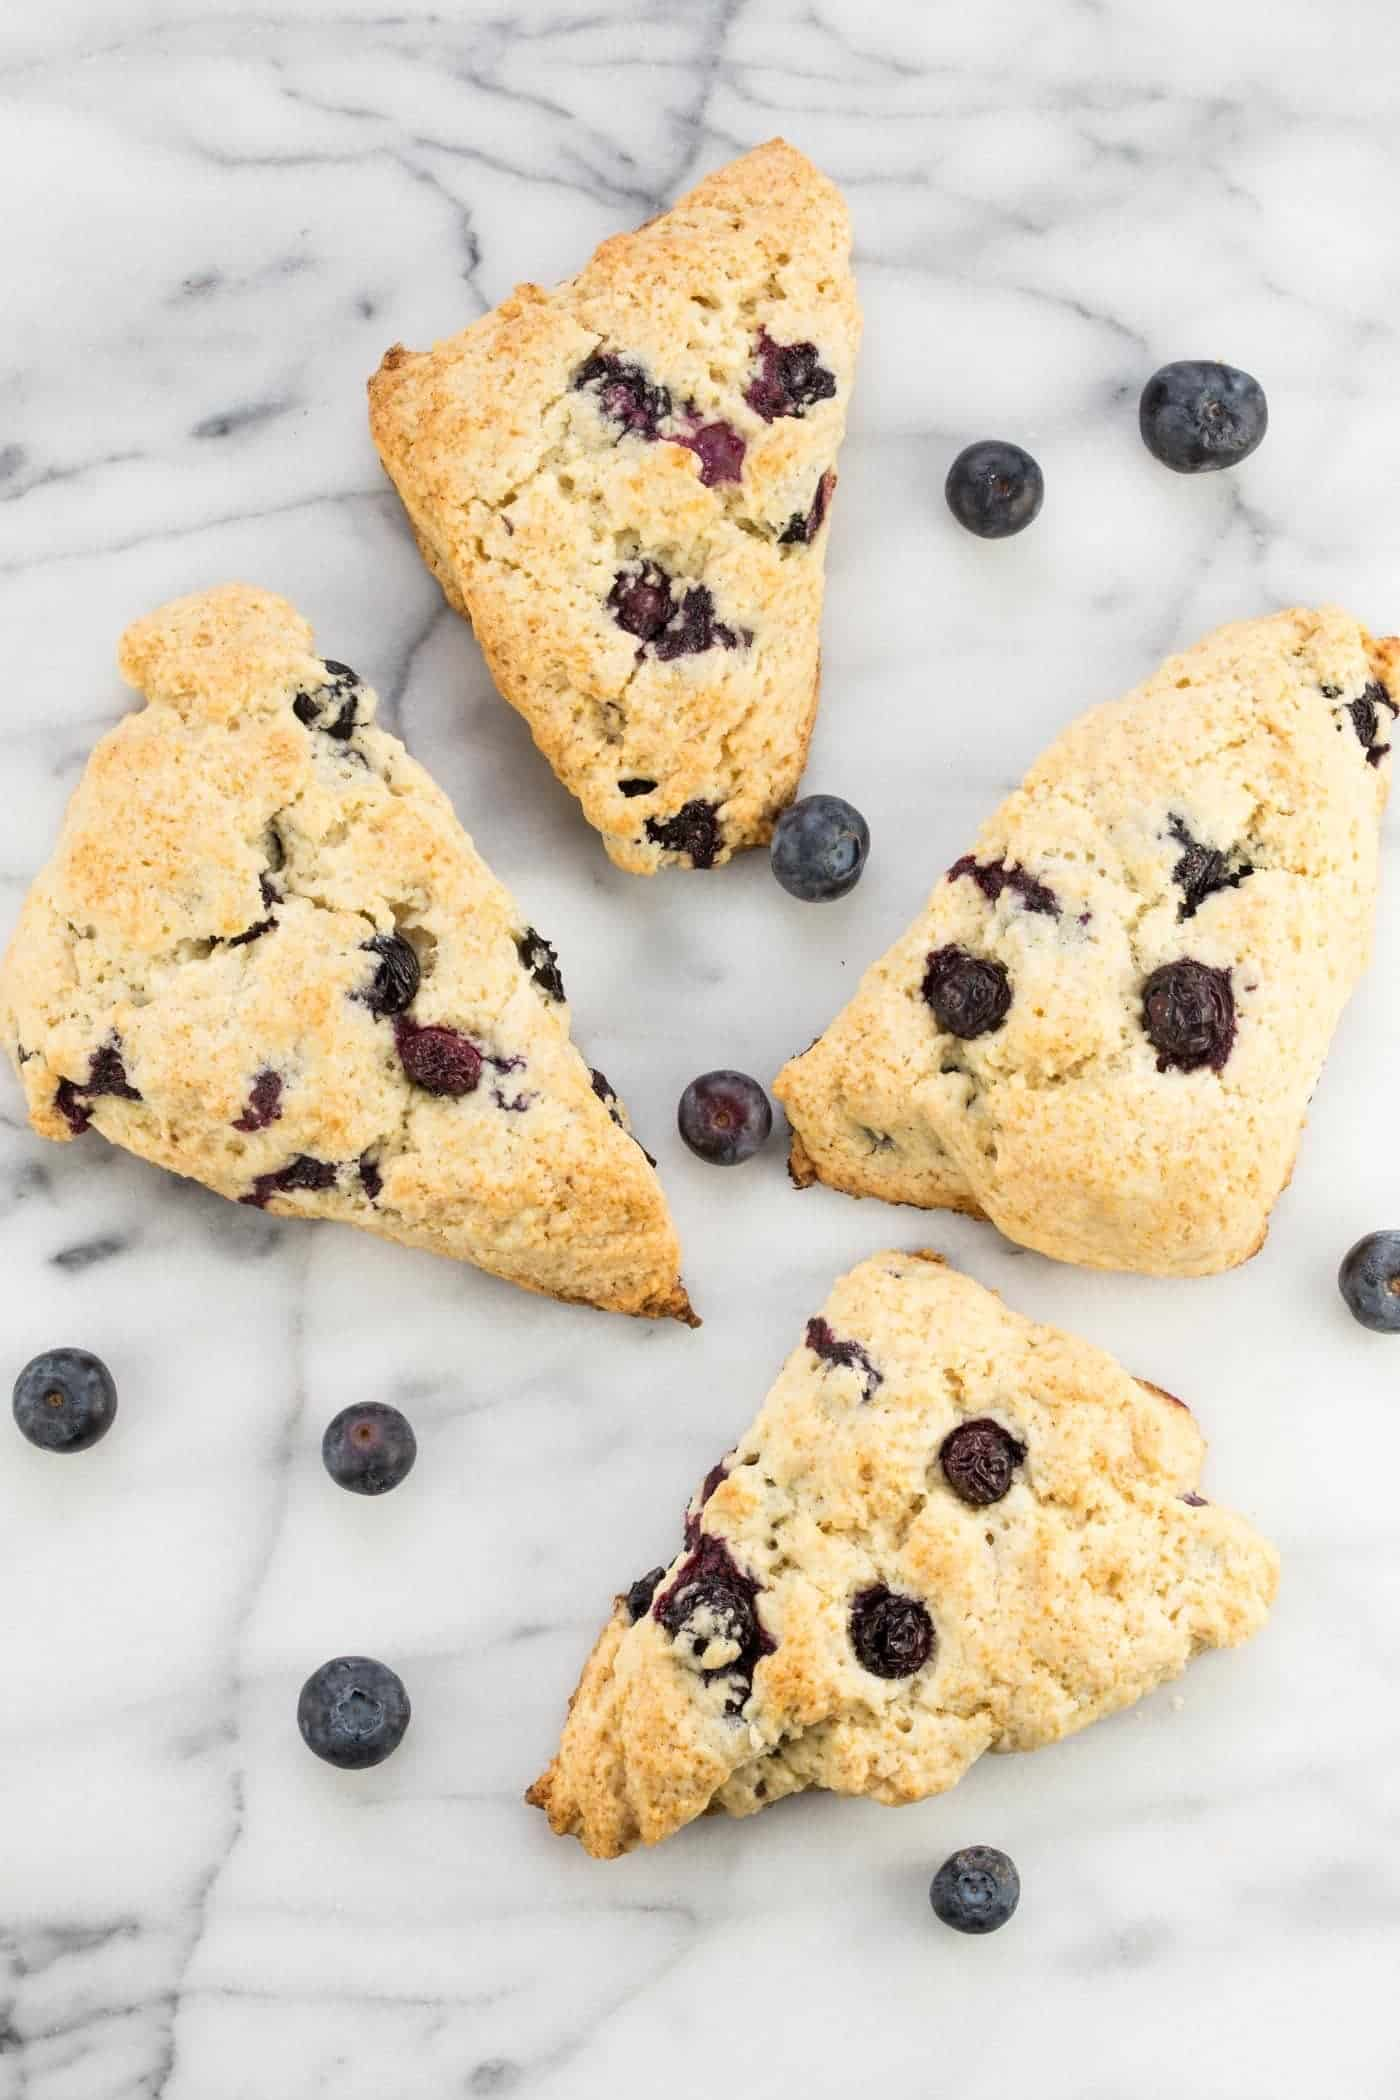 Just say NO to dry and crumbly scones! Bursting with fresh berries, these Blueberry Scones are an easy breakfast treat that will have you fall in love with scones all over again!